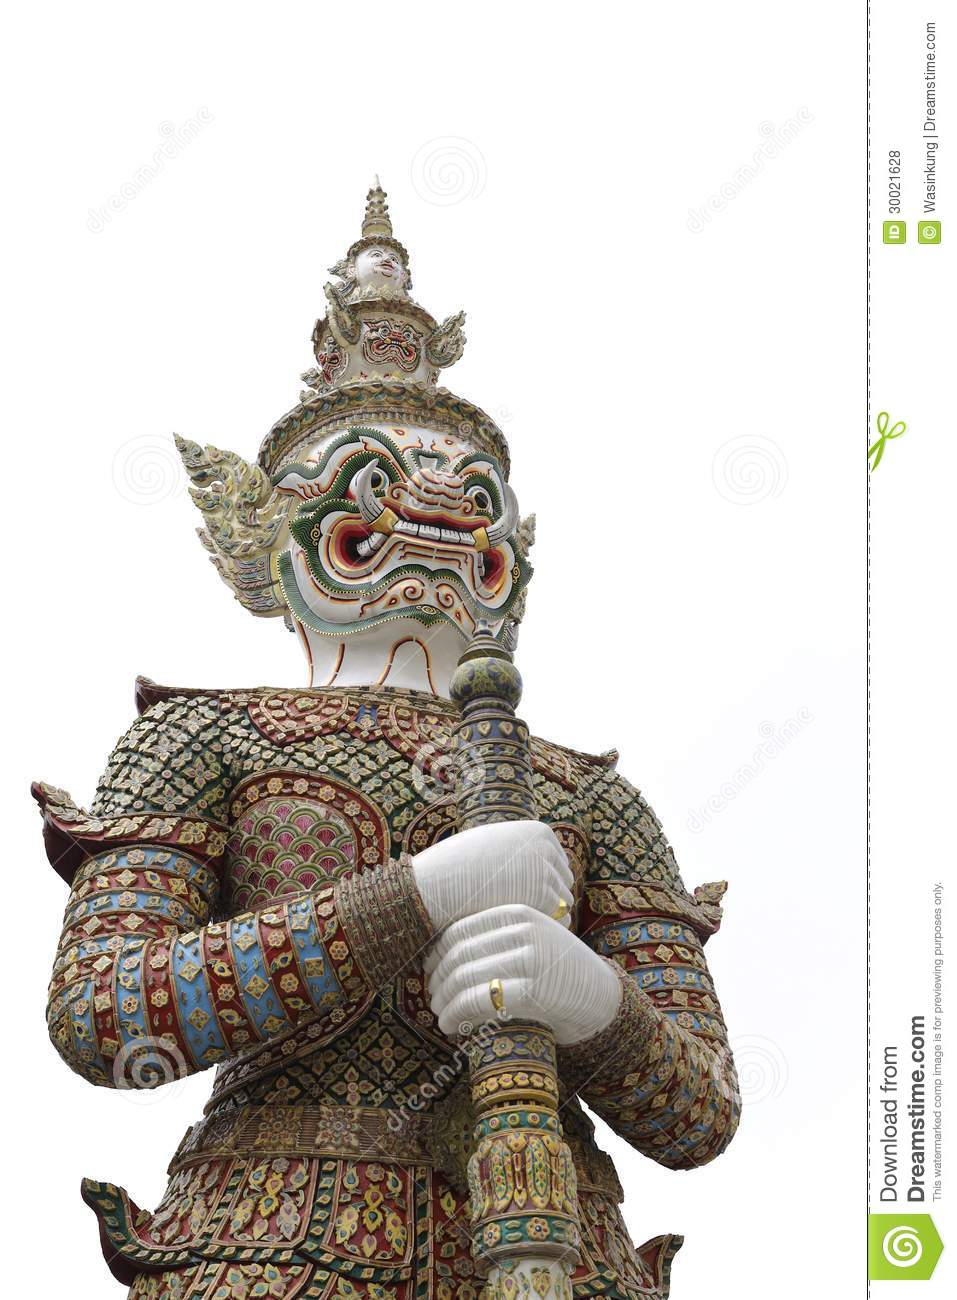 Thai Giant Temple Guardian Stock Photo Image Of Fang